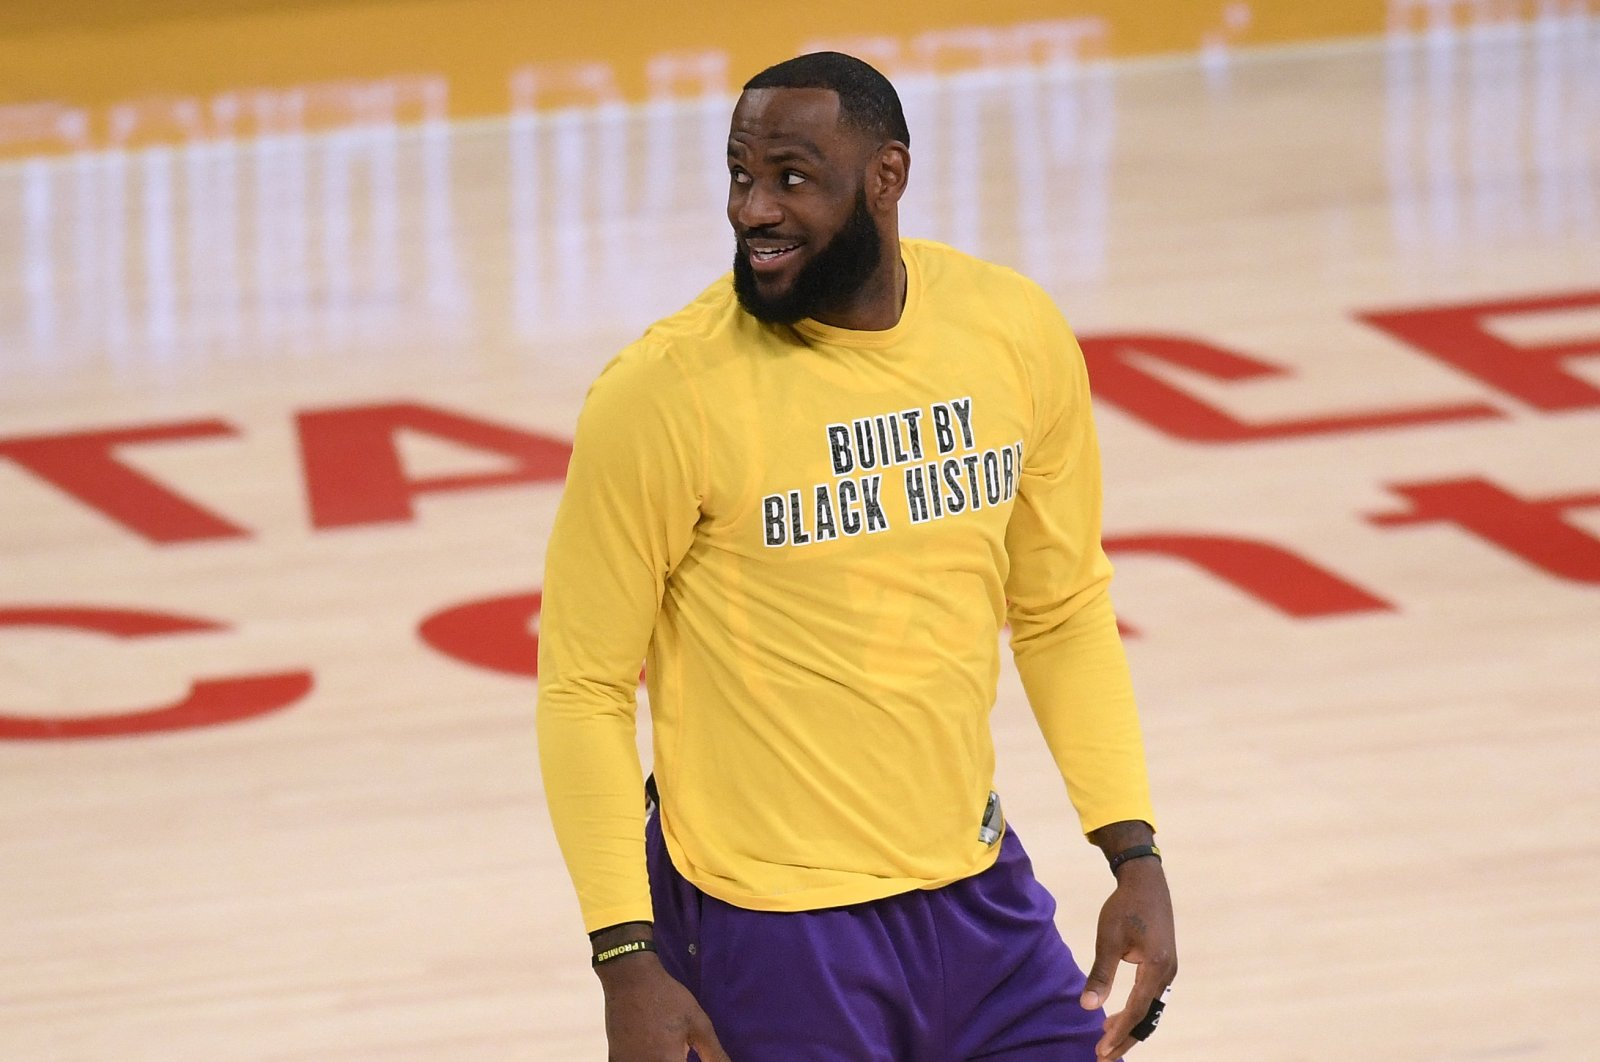 LeBron James of the Los Angeles Lakers smiles as he warms up before an NBA basketball game against the Portland Trail Blazers, in Los Angeles, California, Feb. 26, 2021. (AFP Photo)